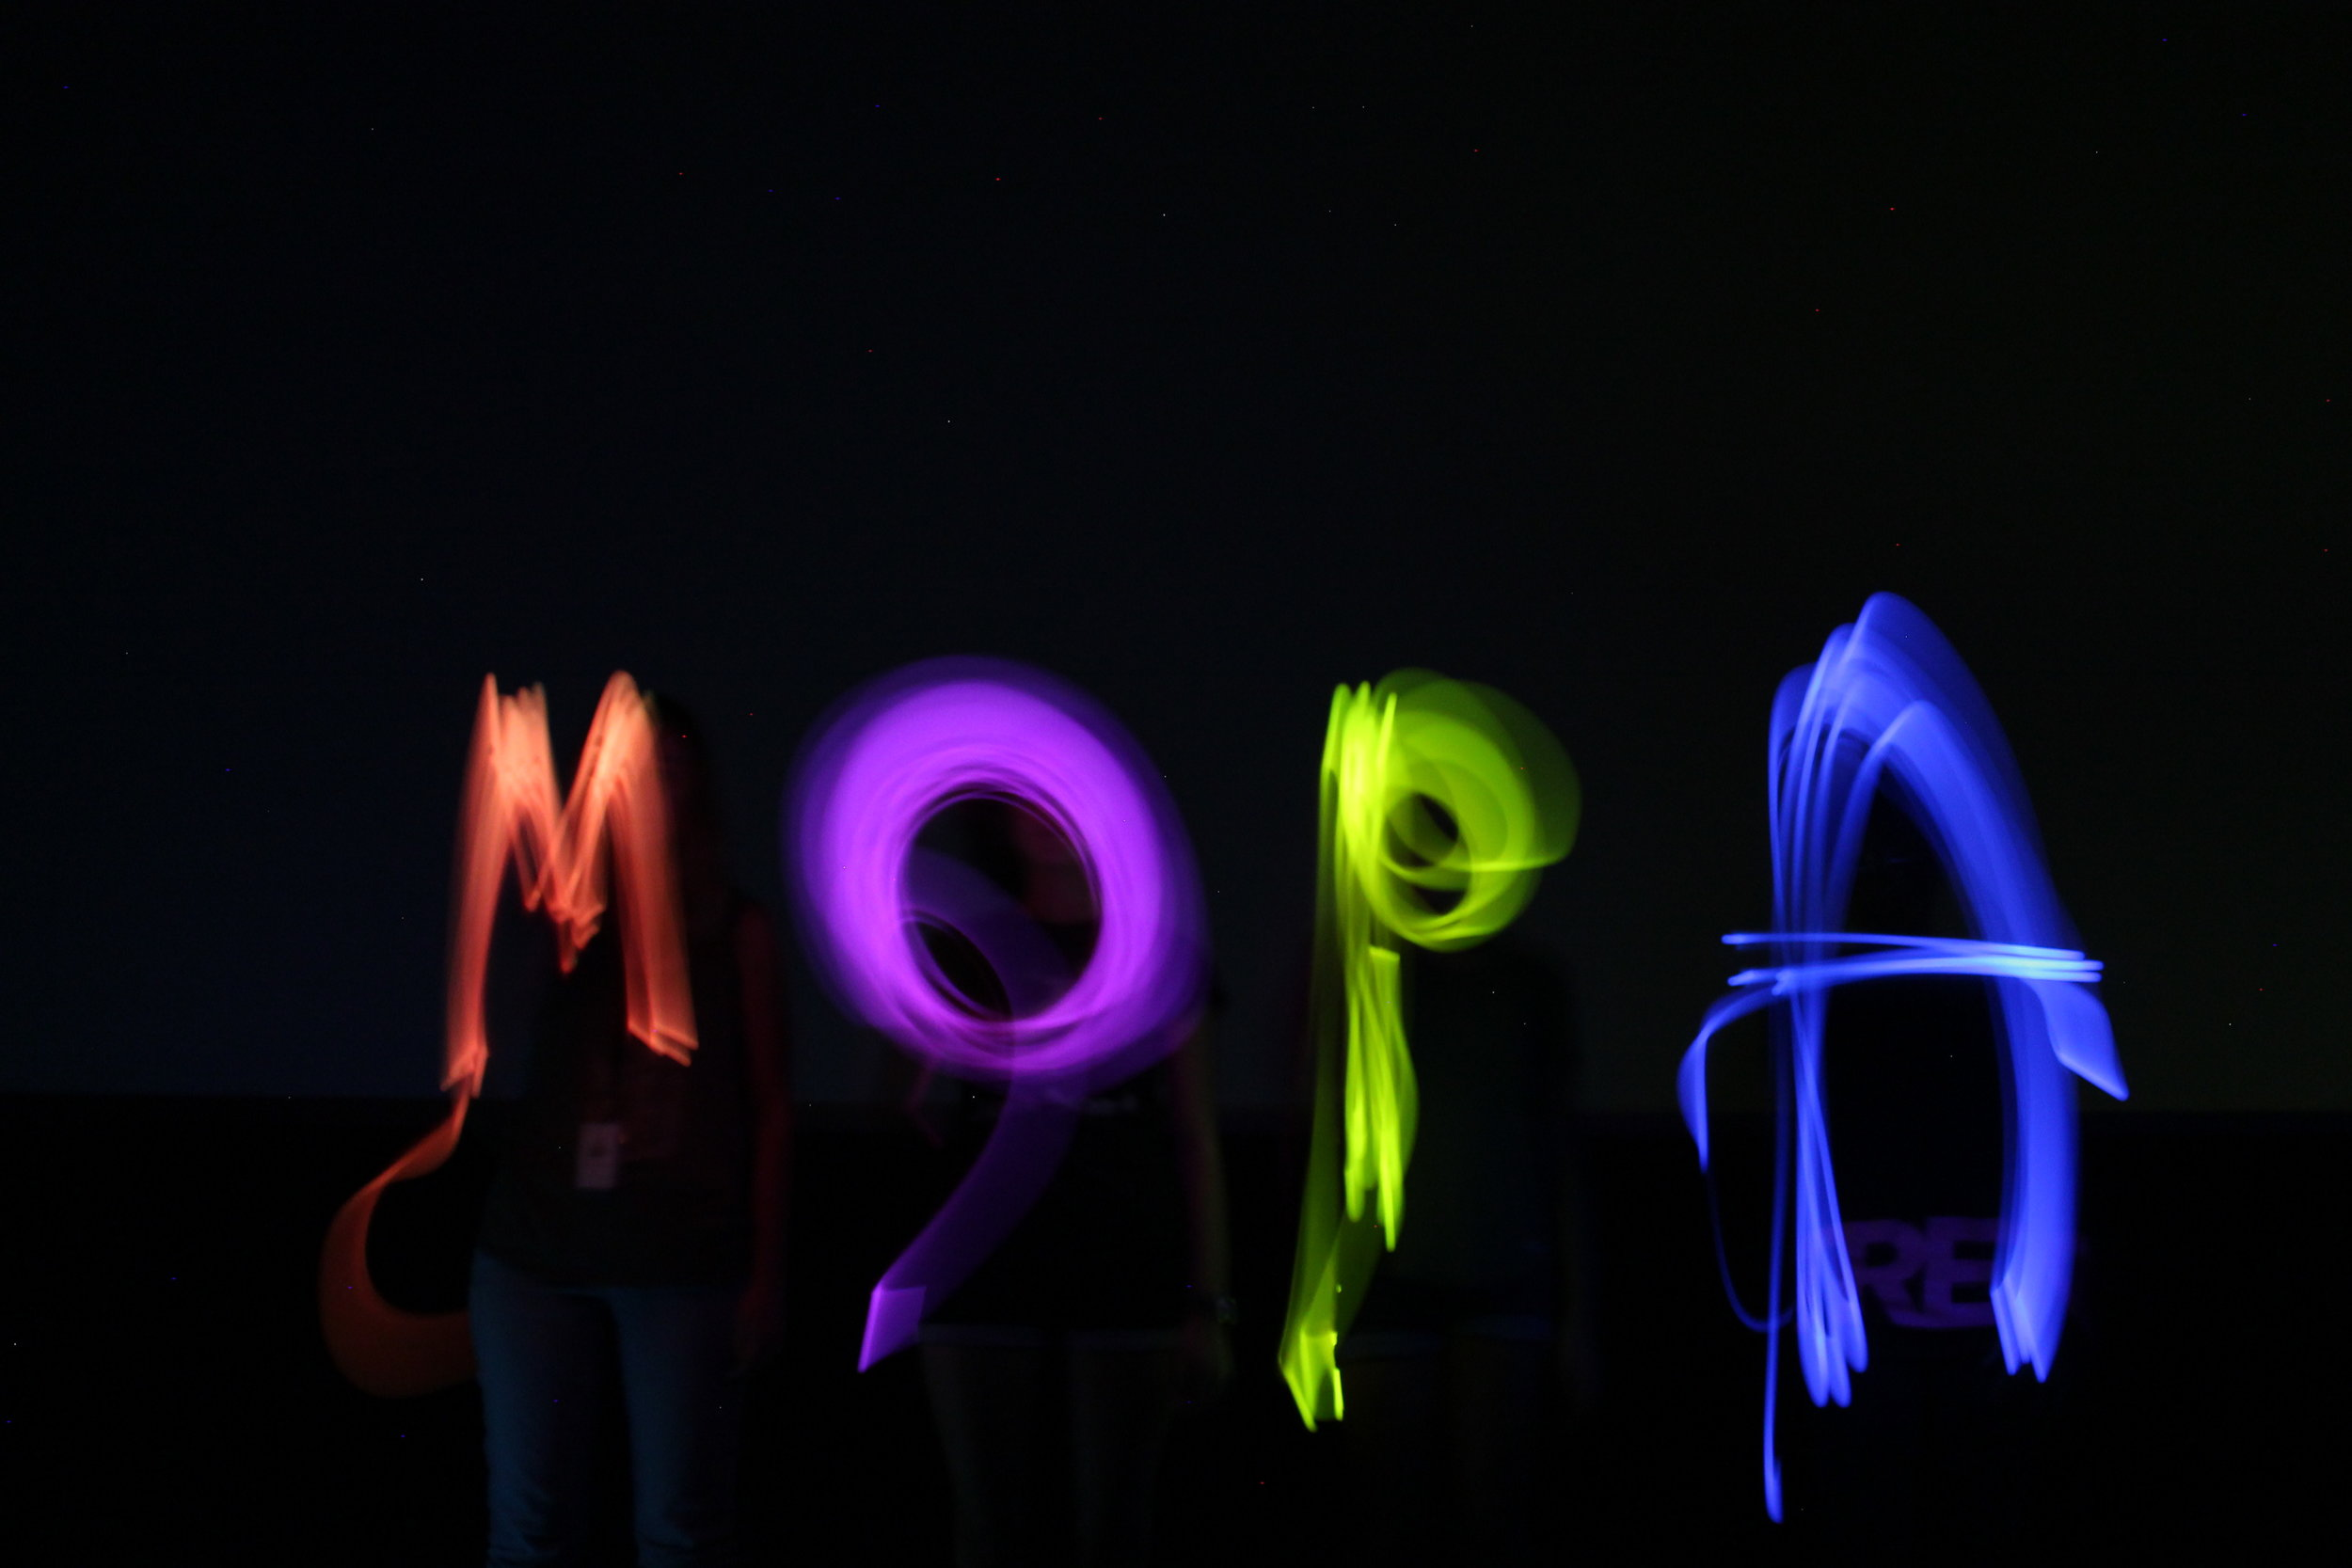 180815_mopa_lightpainting__0030.JPG